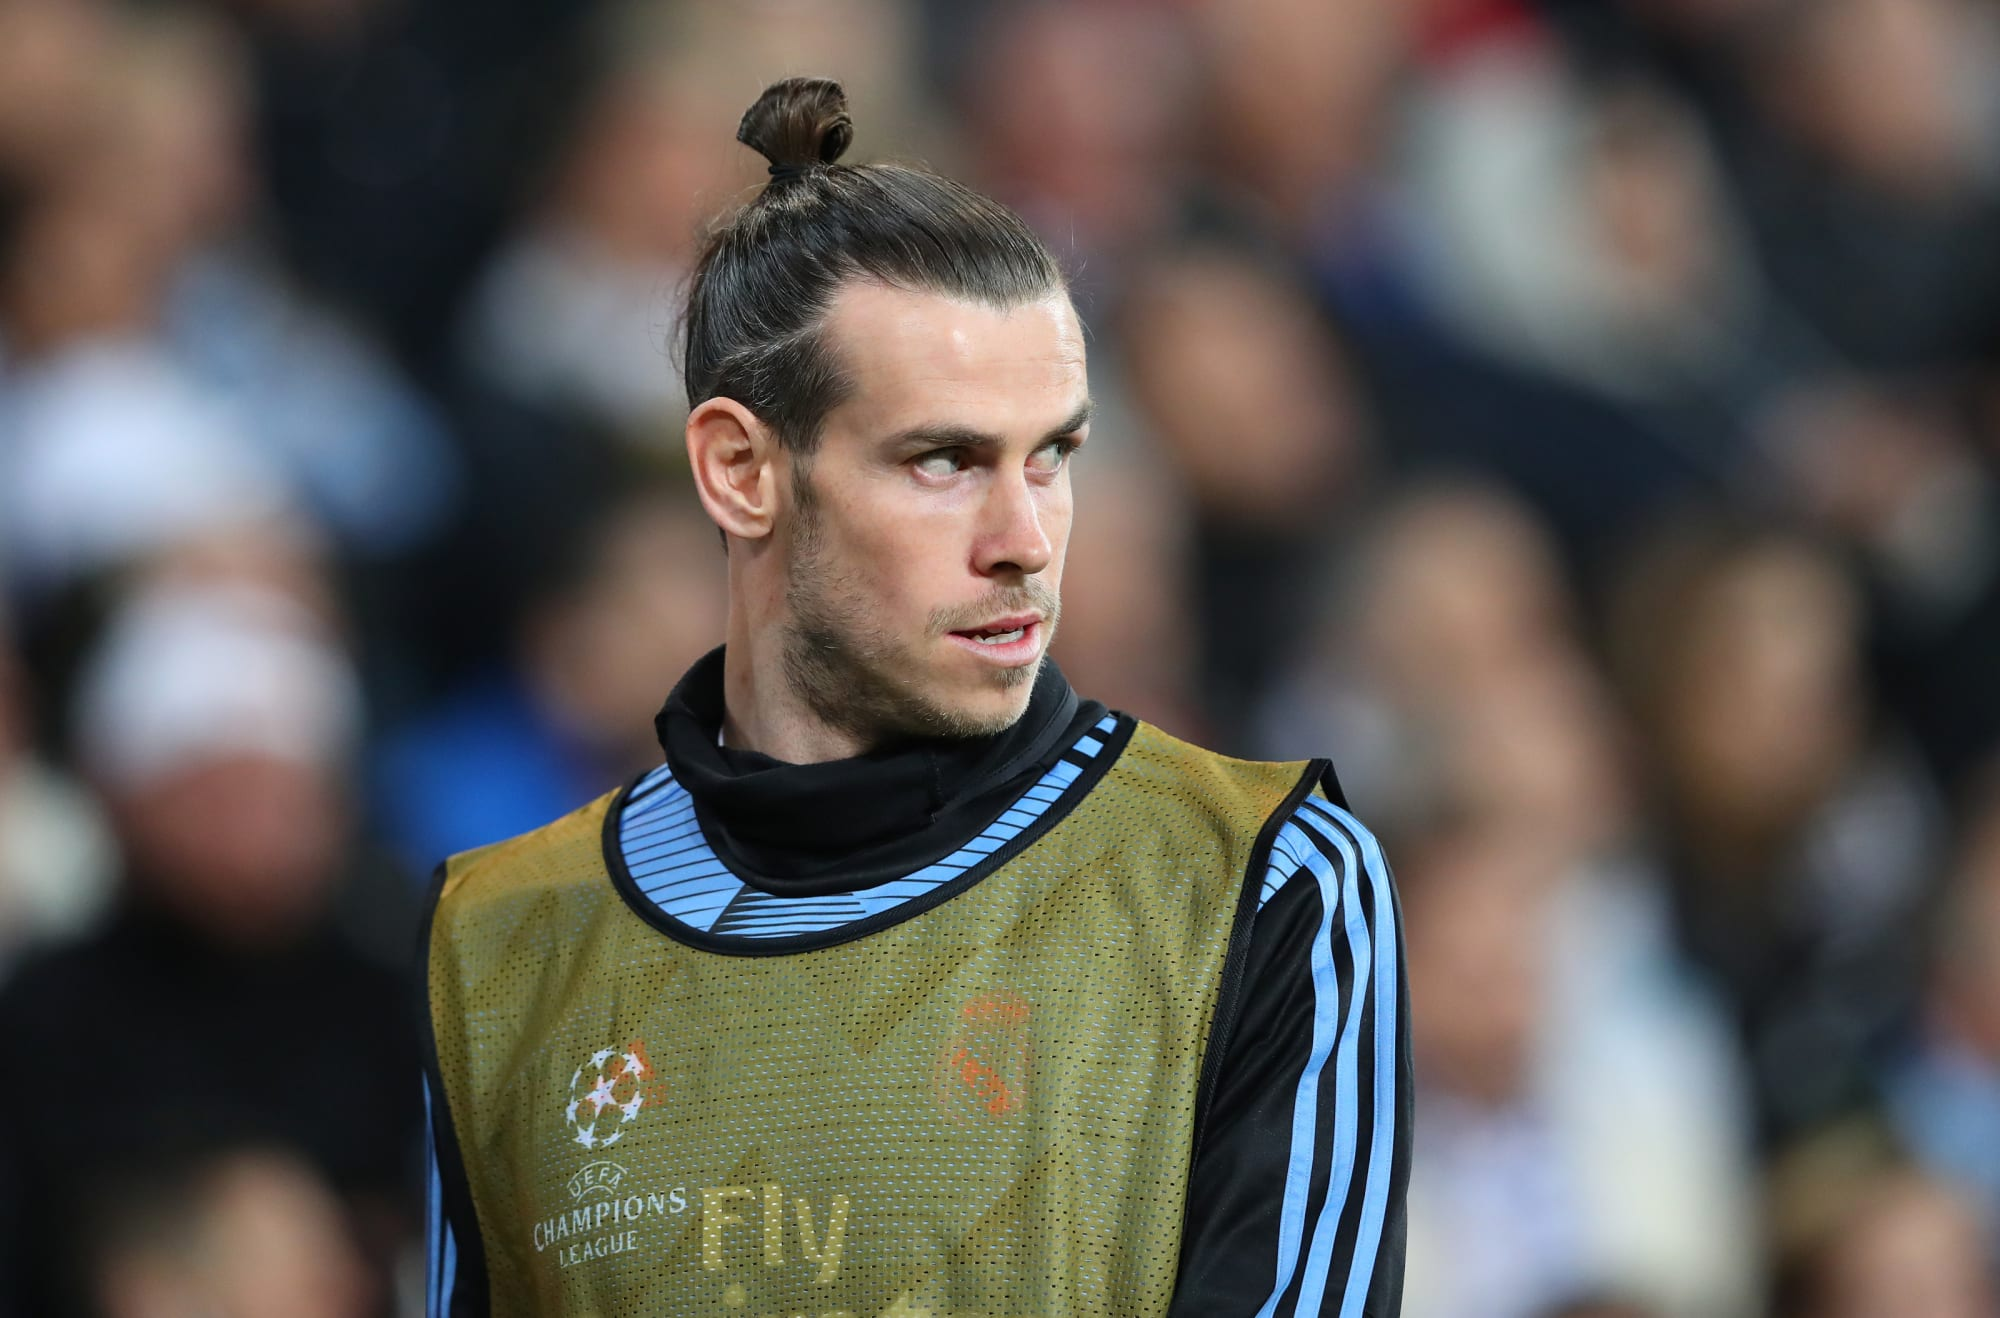 Real Madrid will never be able to sell Gareth Bale at this point